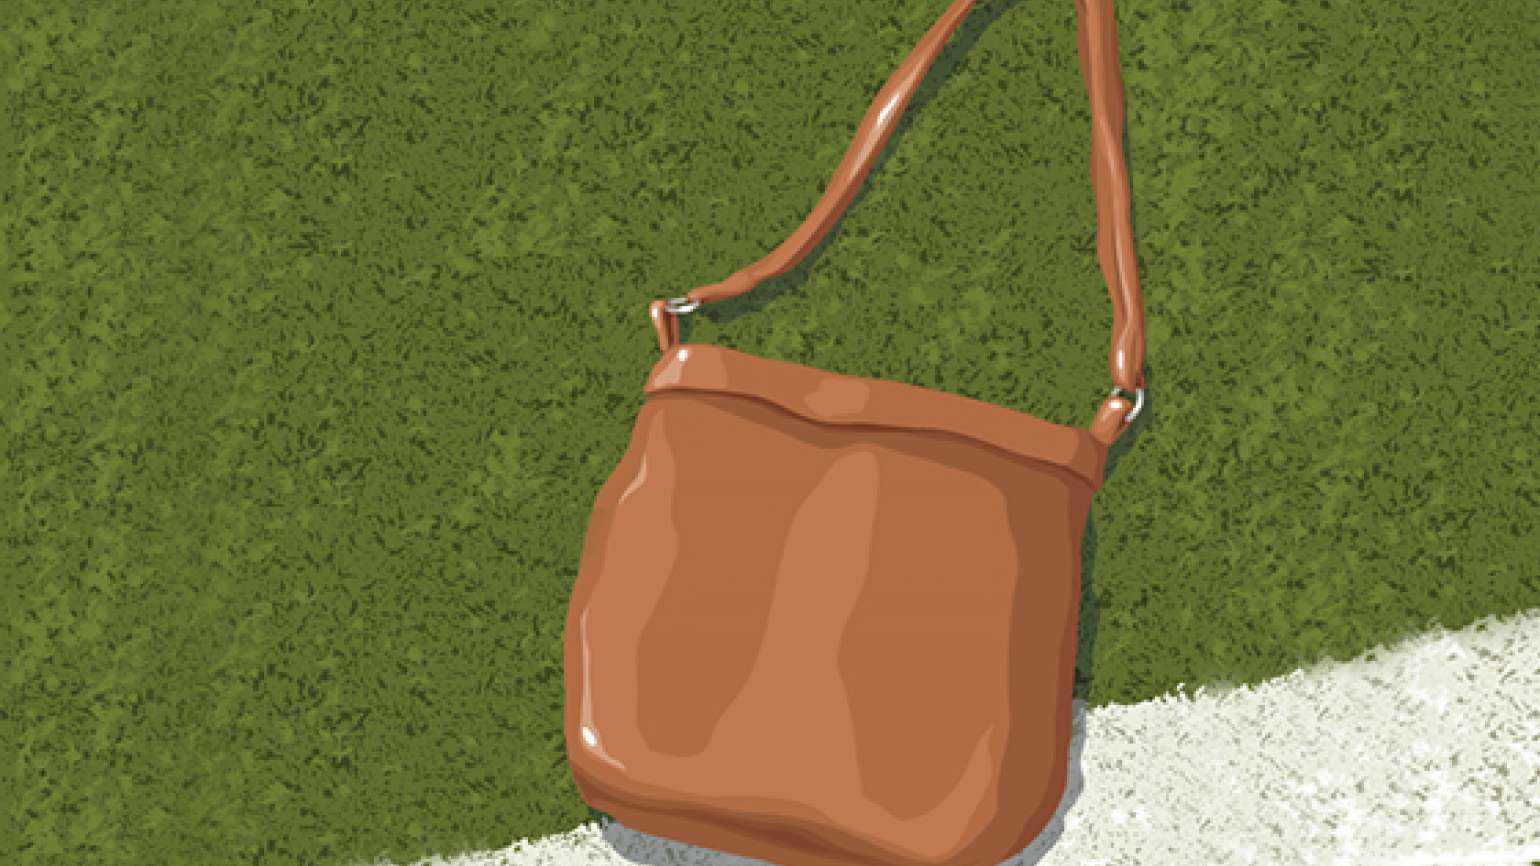 An artist's rendering of a lost purse on a football field